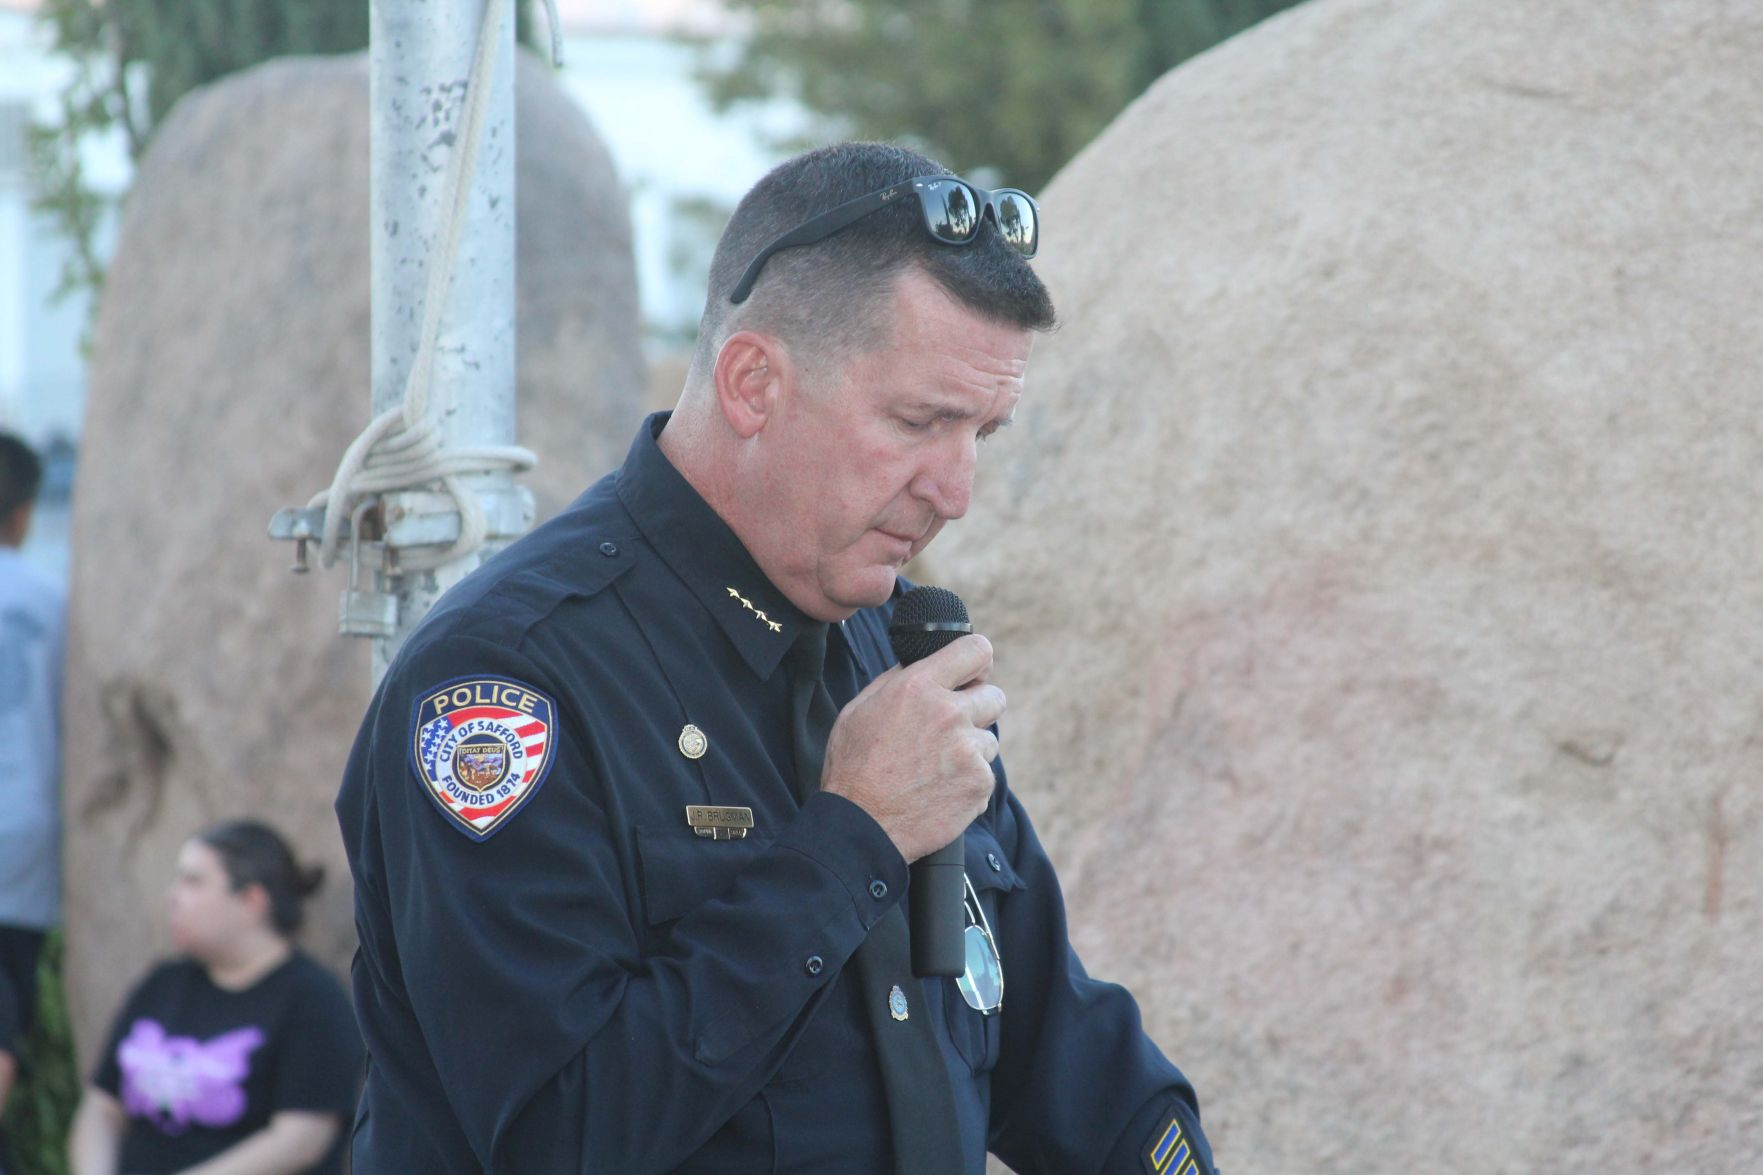 chief of police cover letter%0A Remembering those lost to violence   Local News Stories   eacourier com